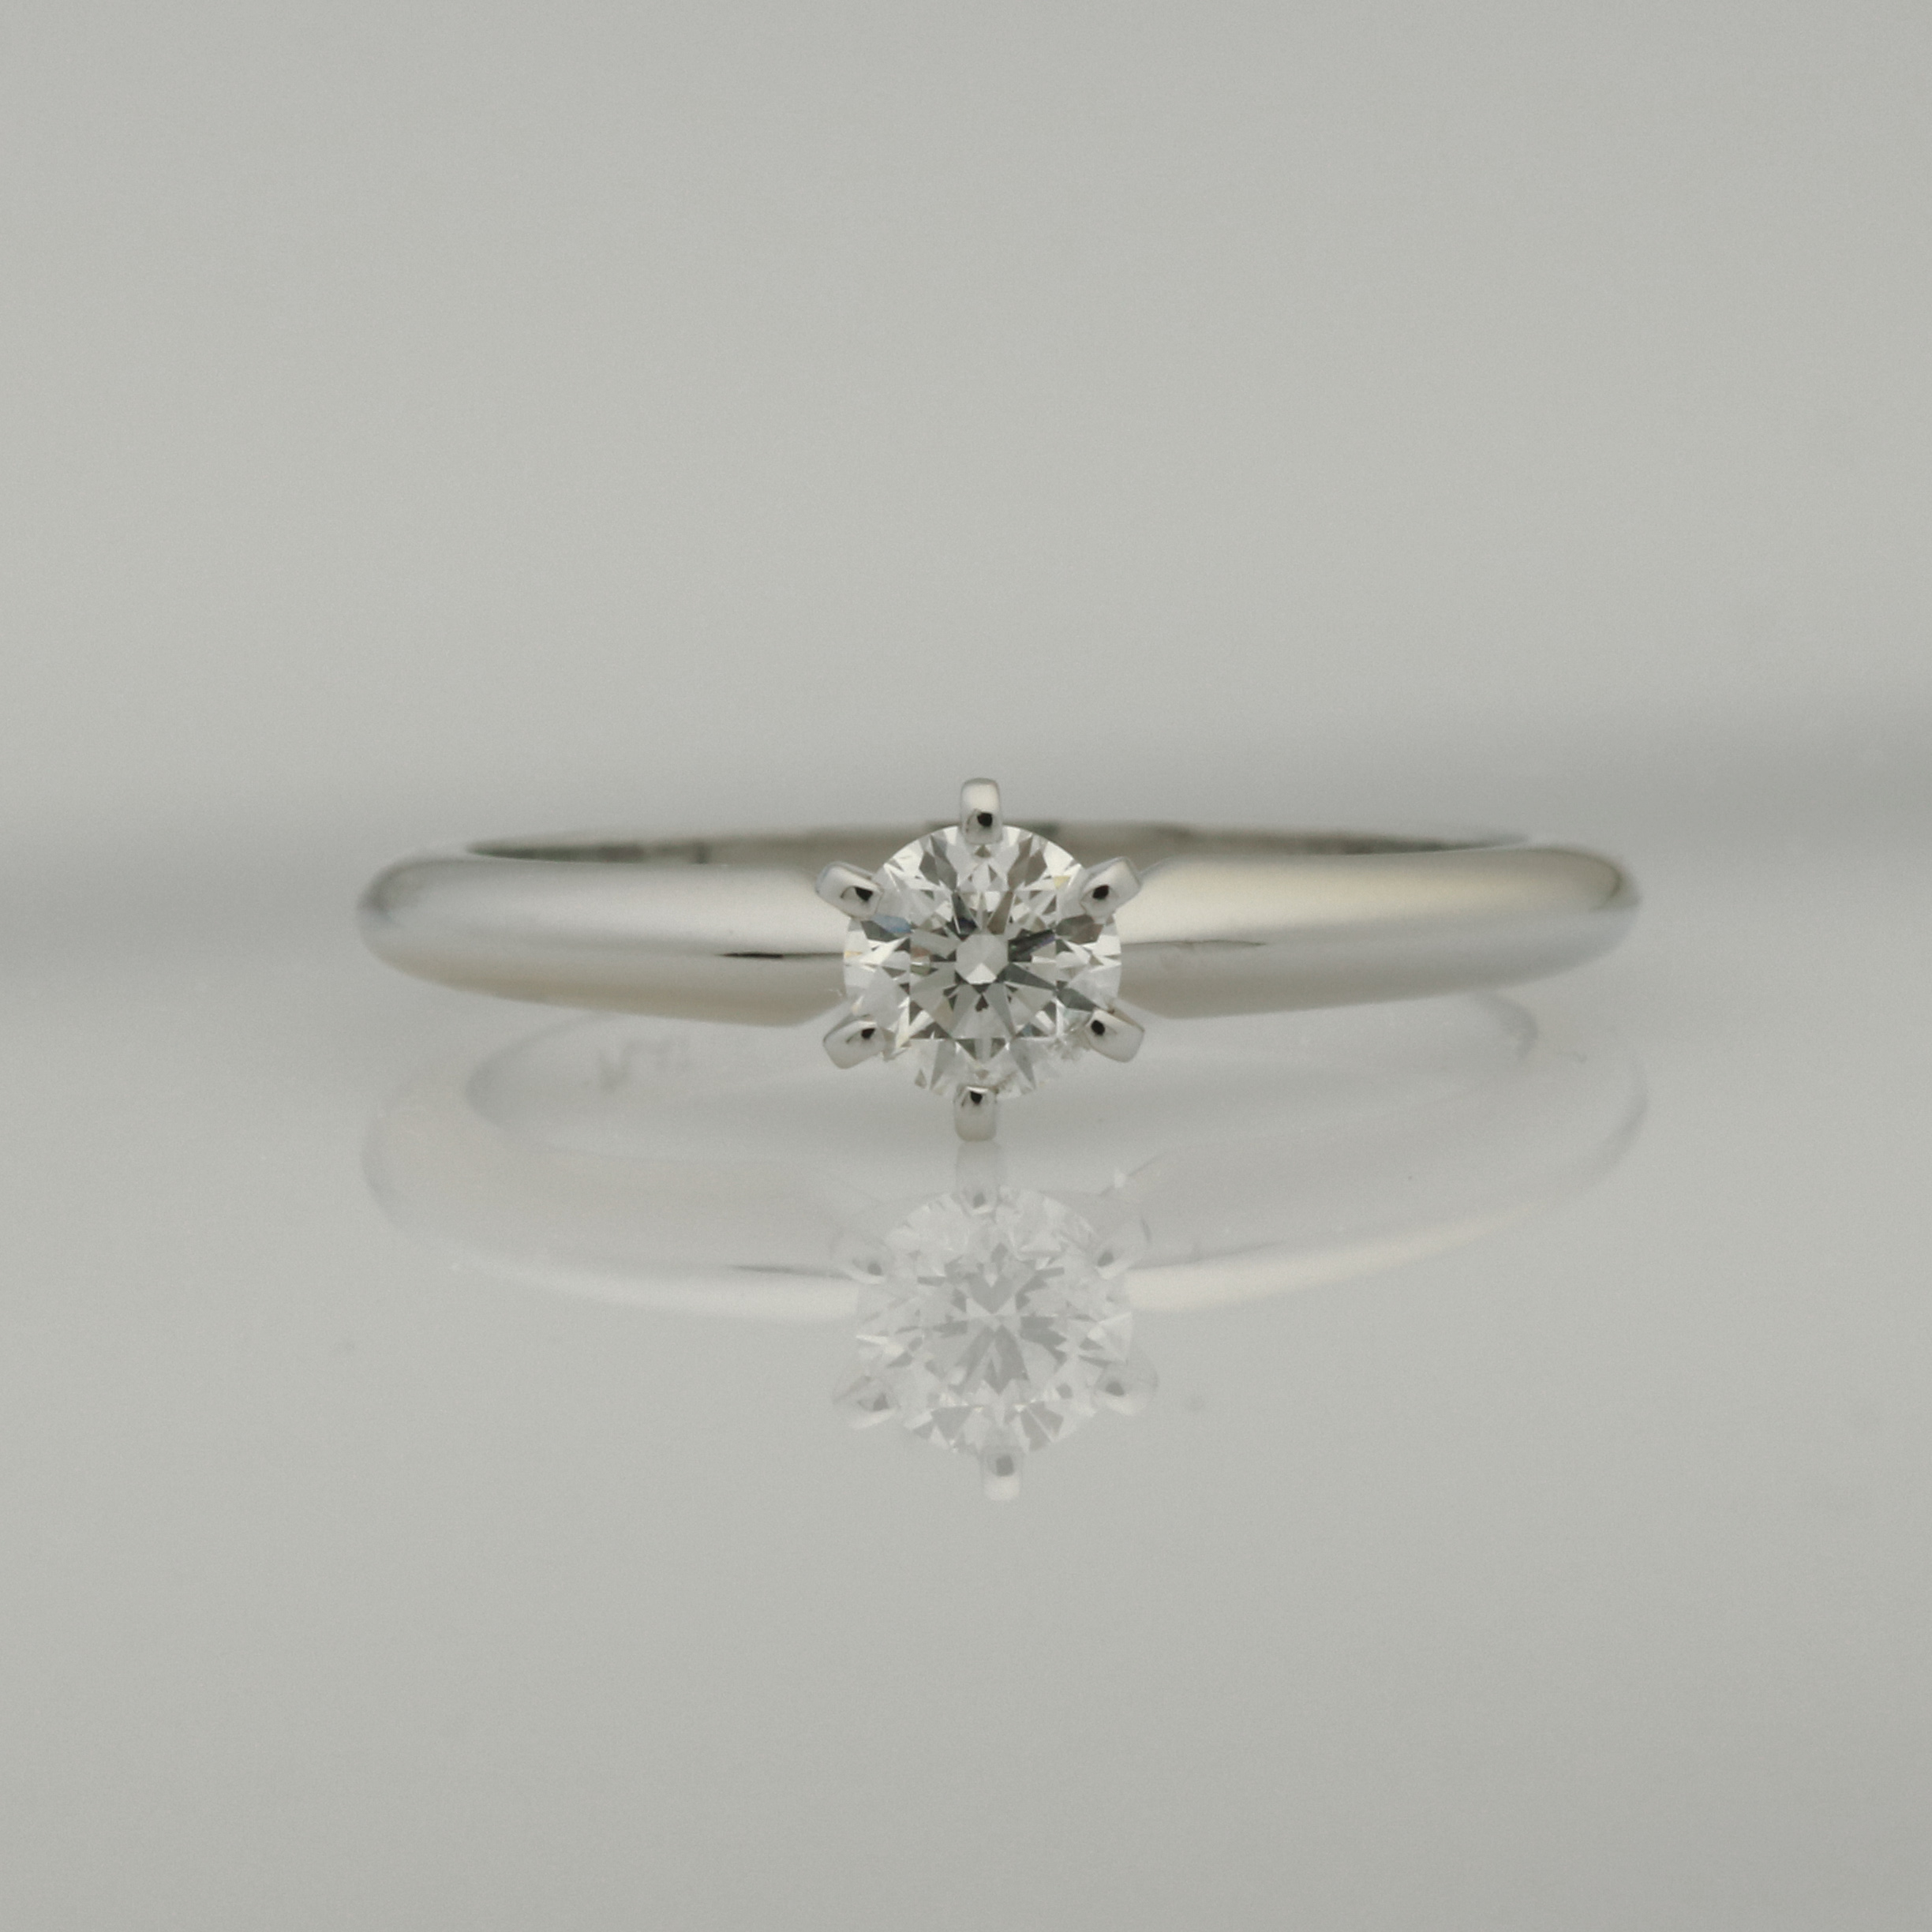 R175 Platinum engagement ring with 32pt G SI2 diamond in a 6 claw setting $2600